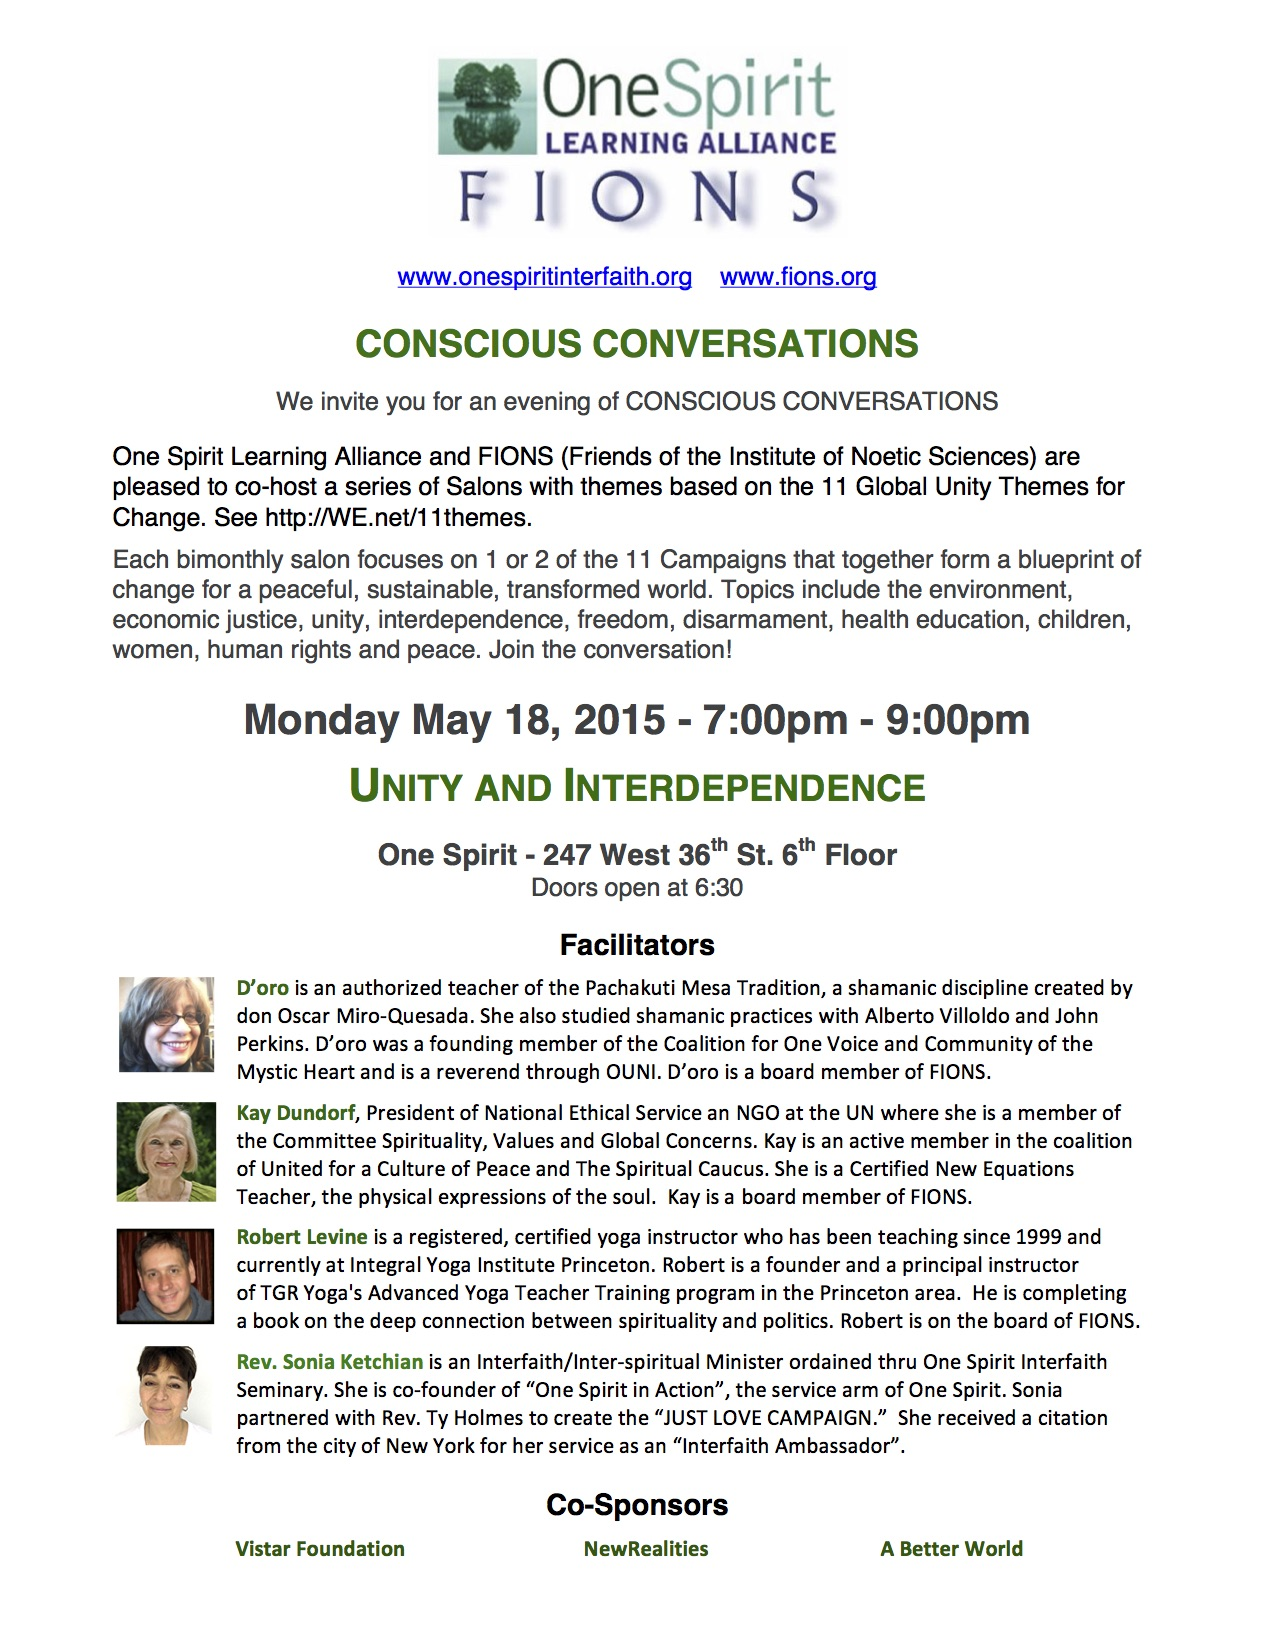 FIONS – One Spirit Salon: Conscious Conversations on Unity & Interdependence, May 18